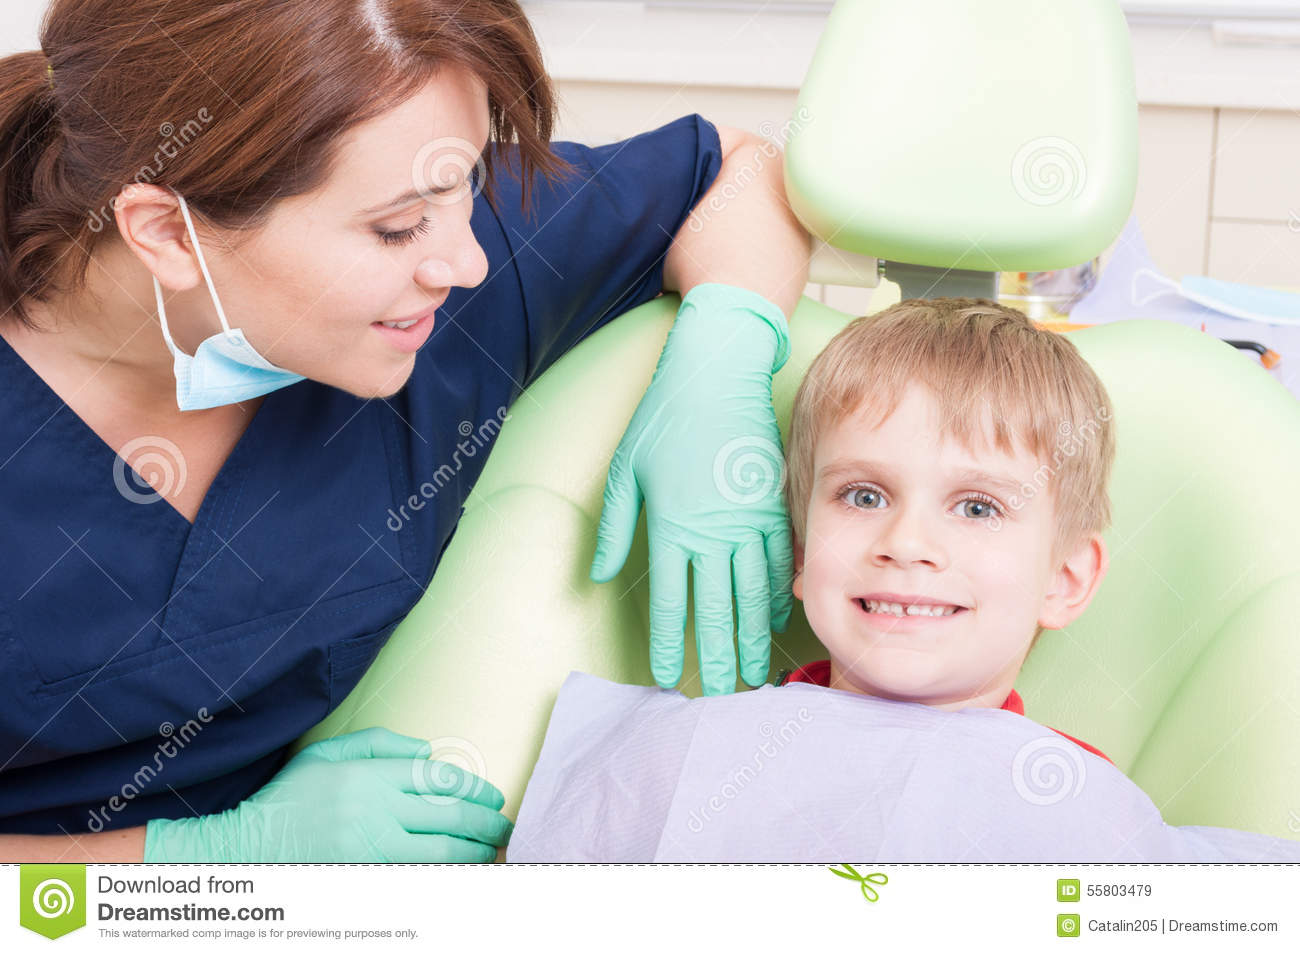 Incredible Happy And Smiling Kid At Dentist With No Fear Stock Image Andrewgaddart Wooden Chair Designs For Living Room Andrewgaddartcom